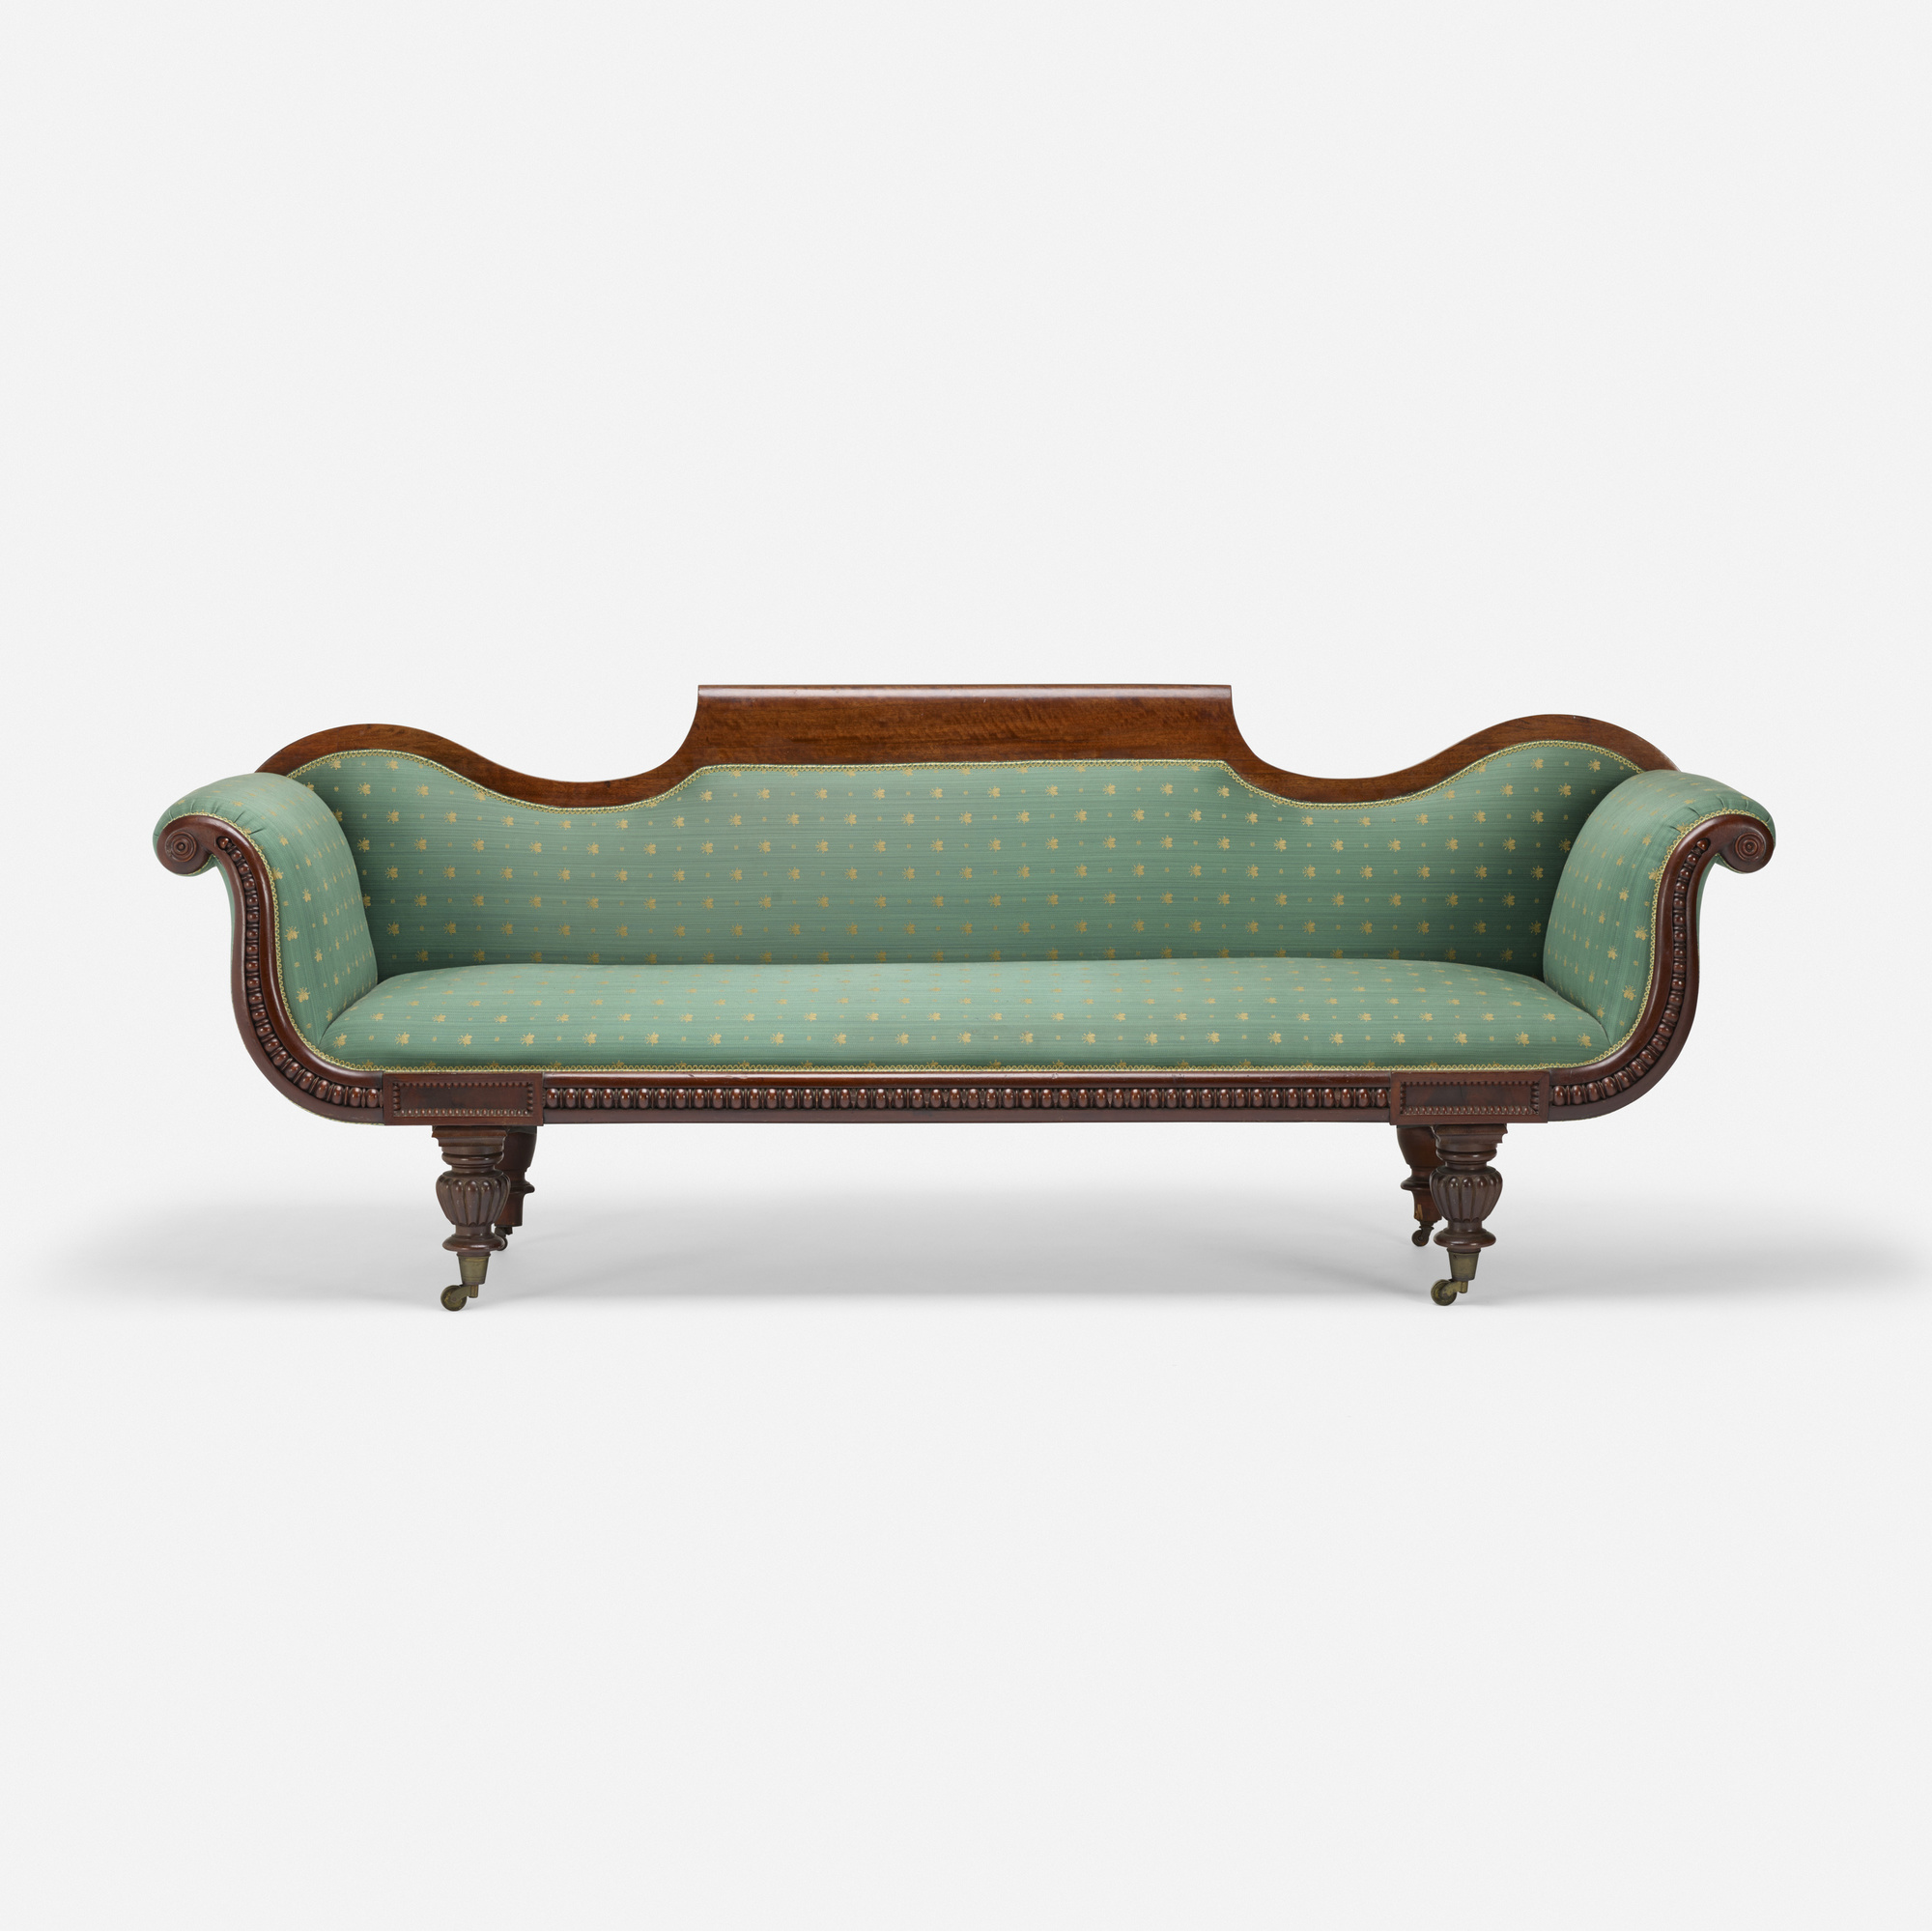 322: 19th Century / Gondola sofa (1 of 3)